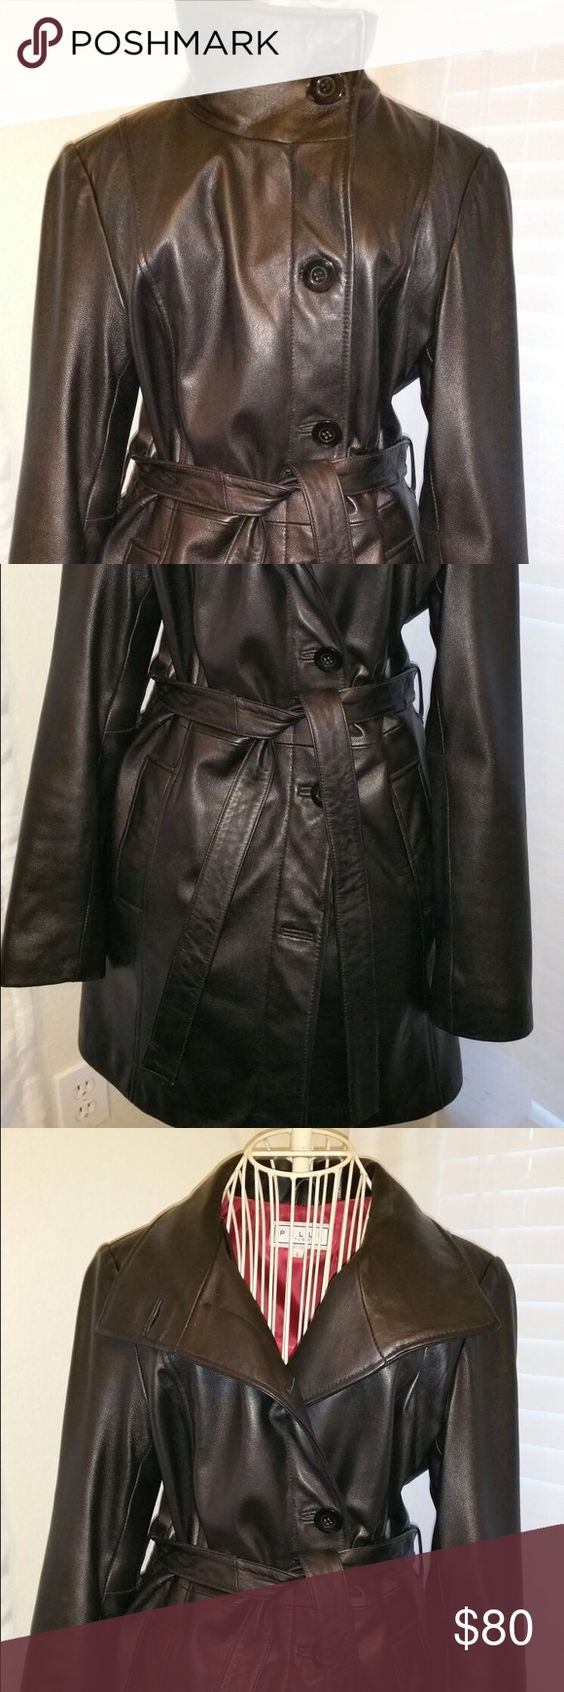 Pelle Studio genuine leather blazer jacket/coat stylish and comfortable black leather jacket with warm soft lining. It will go well with jeans/ leggings/pants :) lost one of the large buttons on the front of the jacket. Jackets & Coats